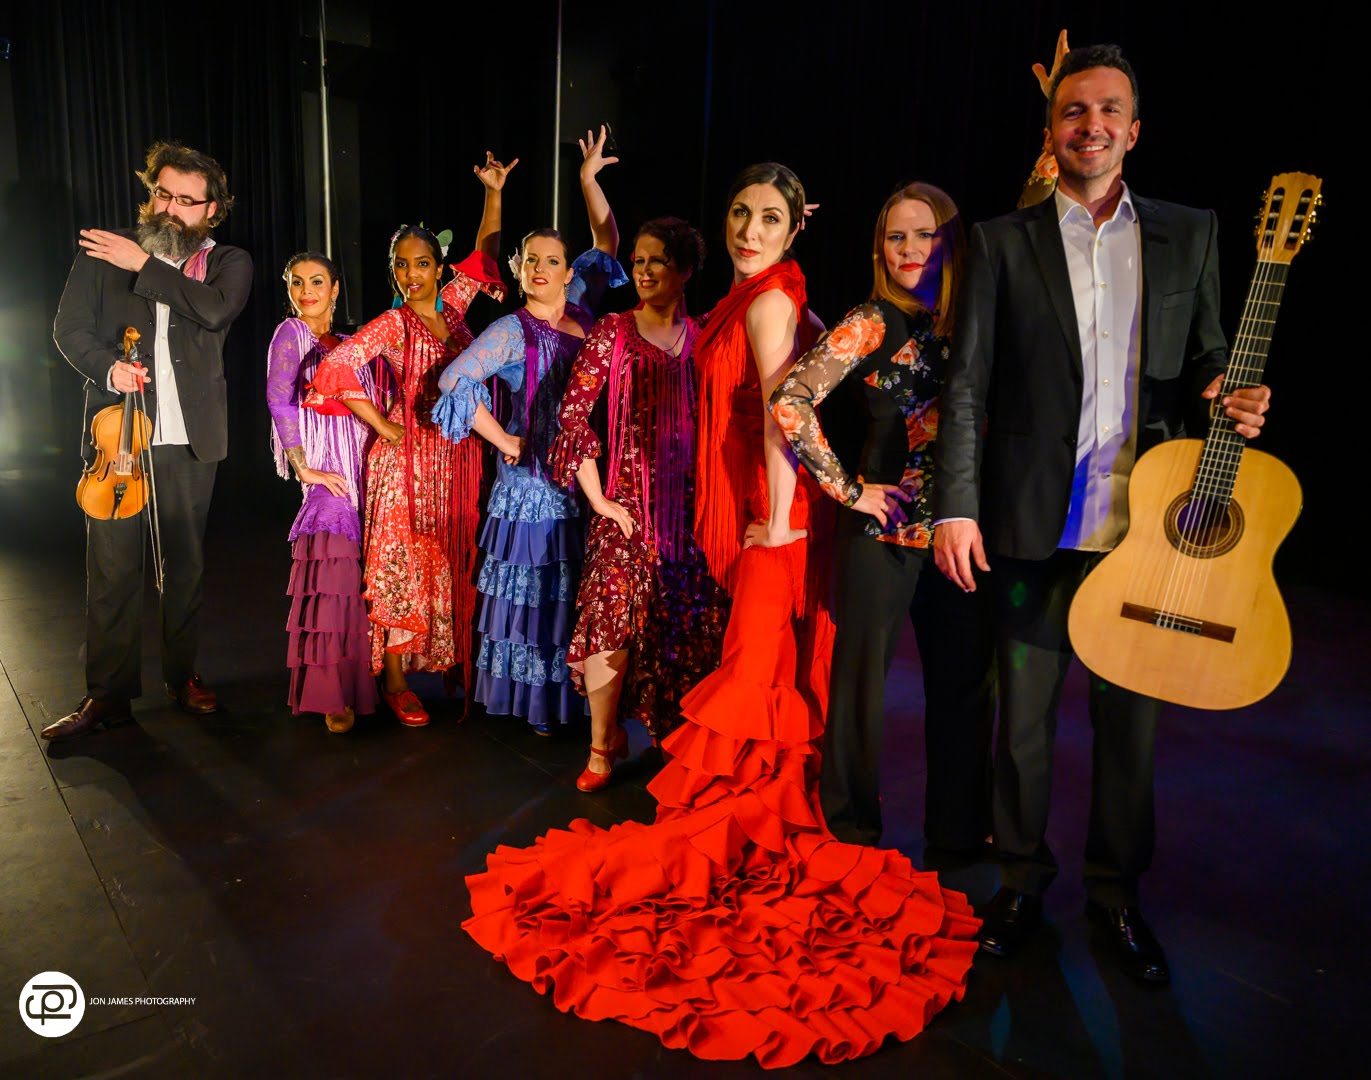 dan macneil stands with guitar and front of long line of brightly costumed dancers and musicians